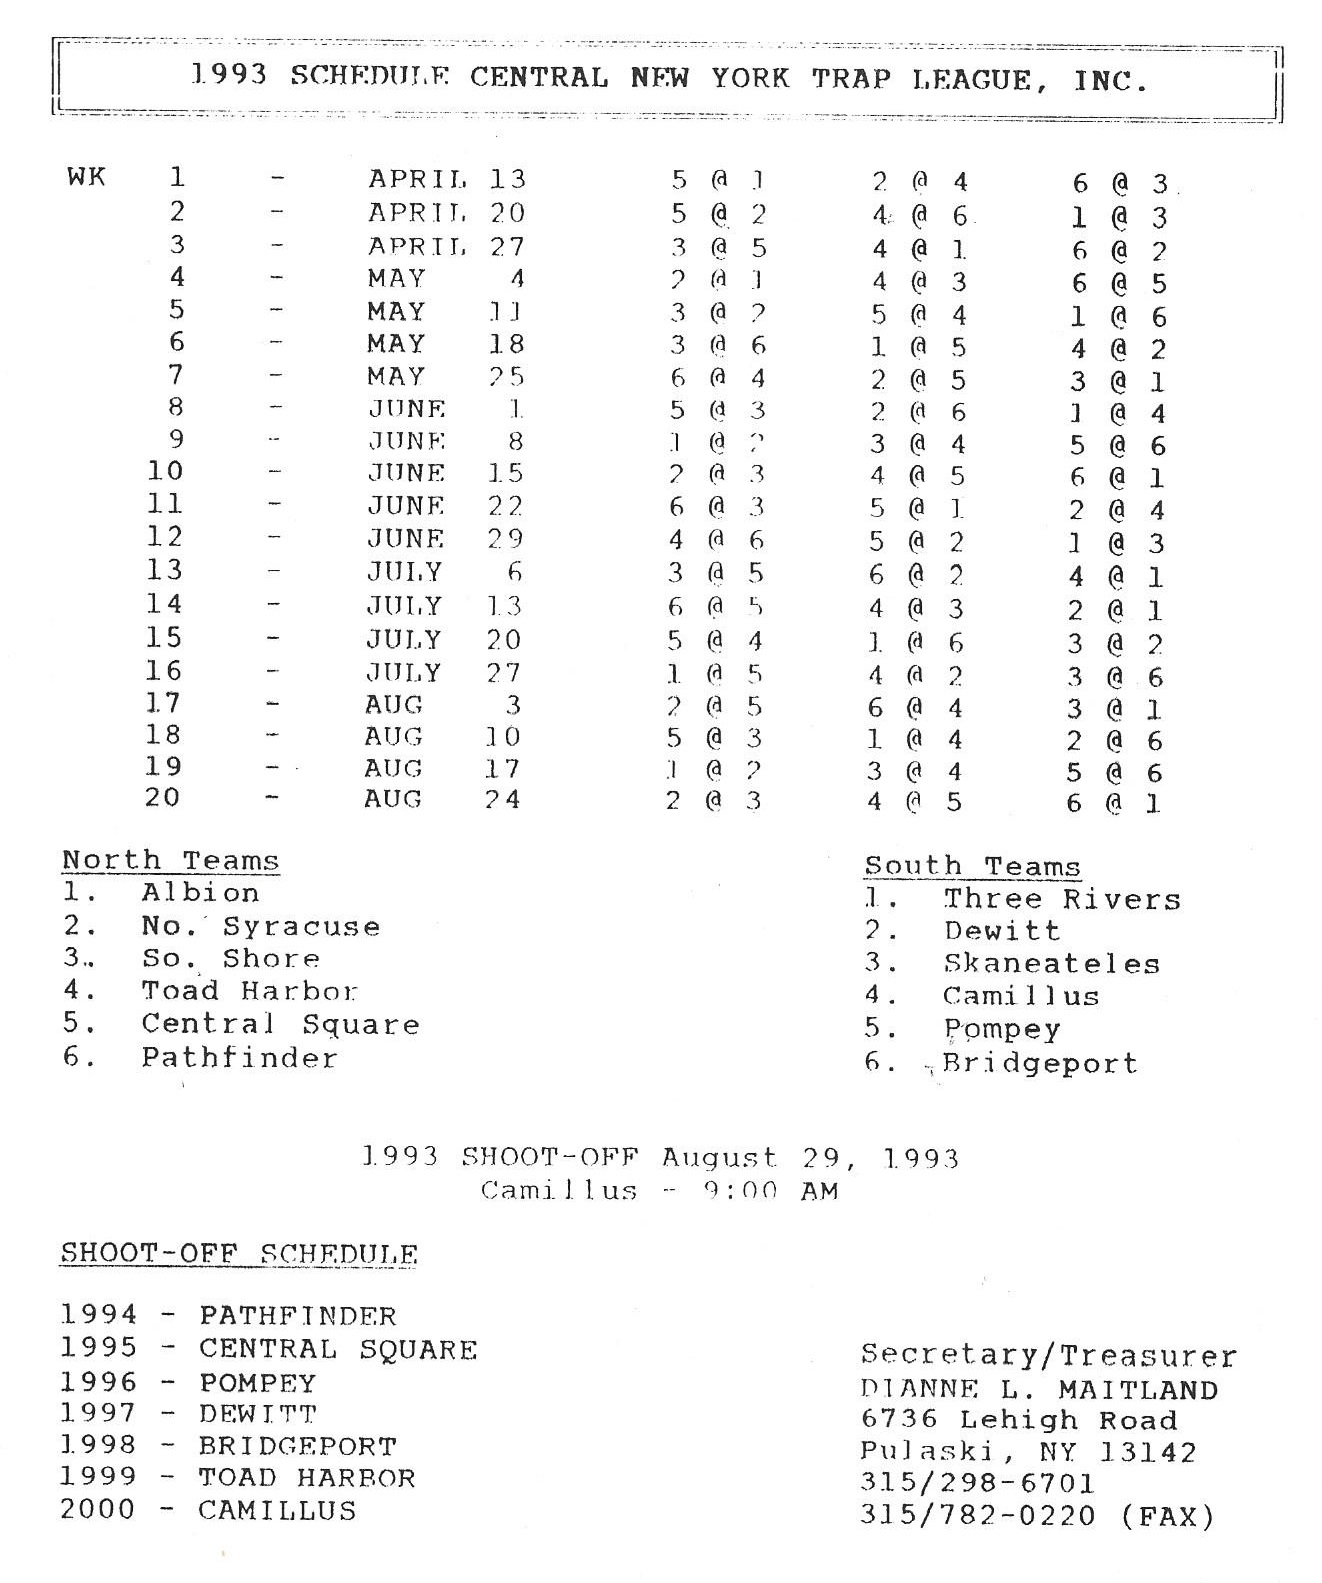 1993 CNYTL Schedule